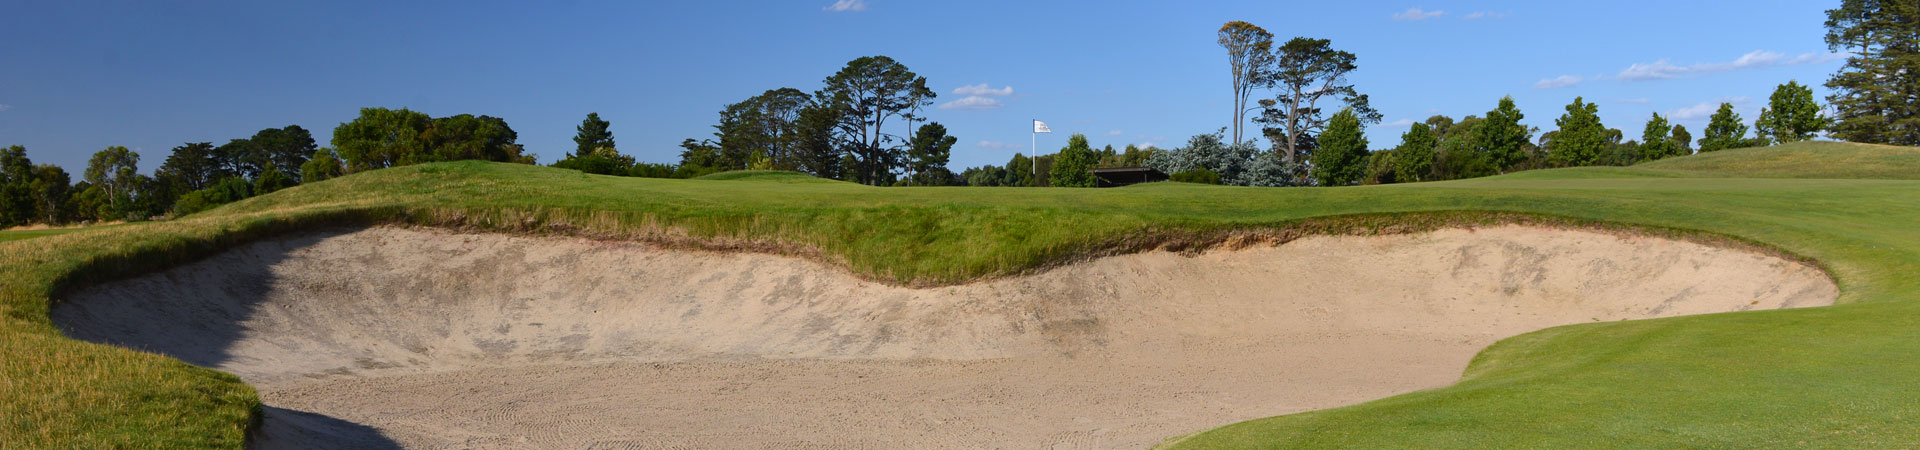 1st Hole Greenside Bunker